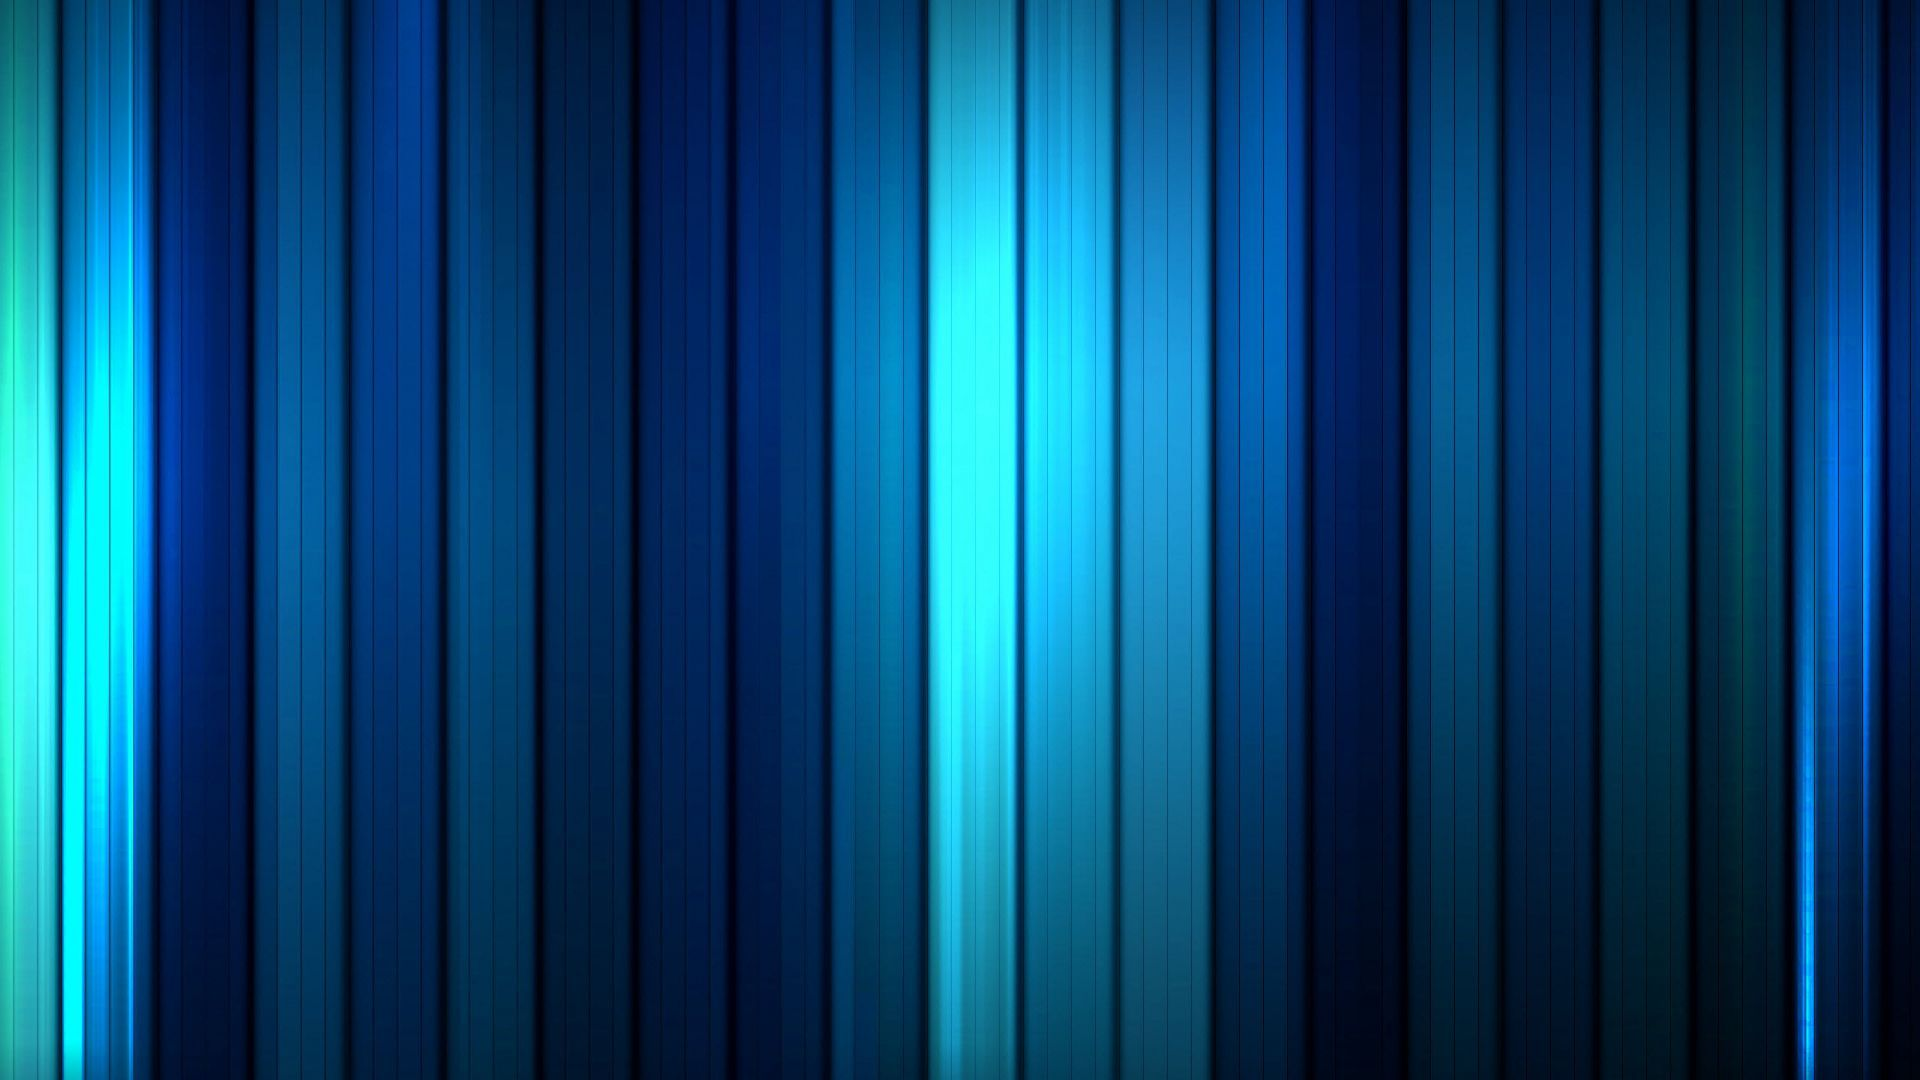 Wallpapers Azul Fondo De Pantalla Degradado Hd Hq P